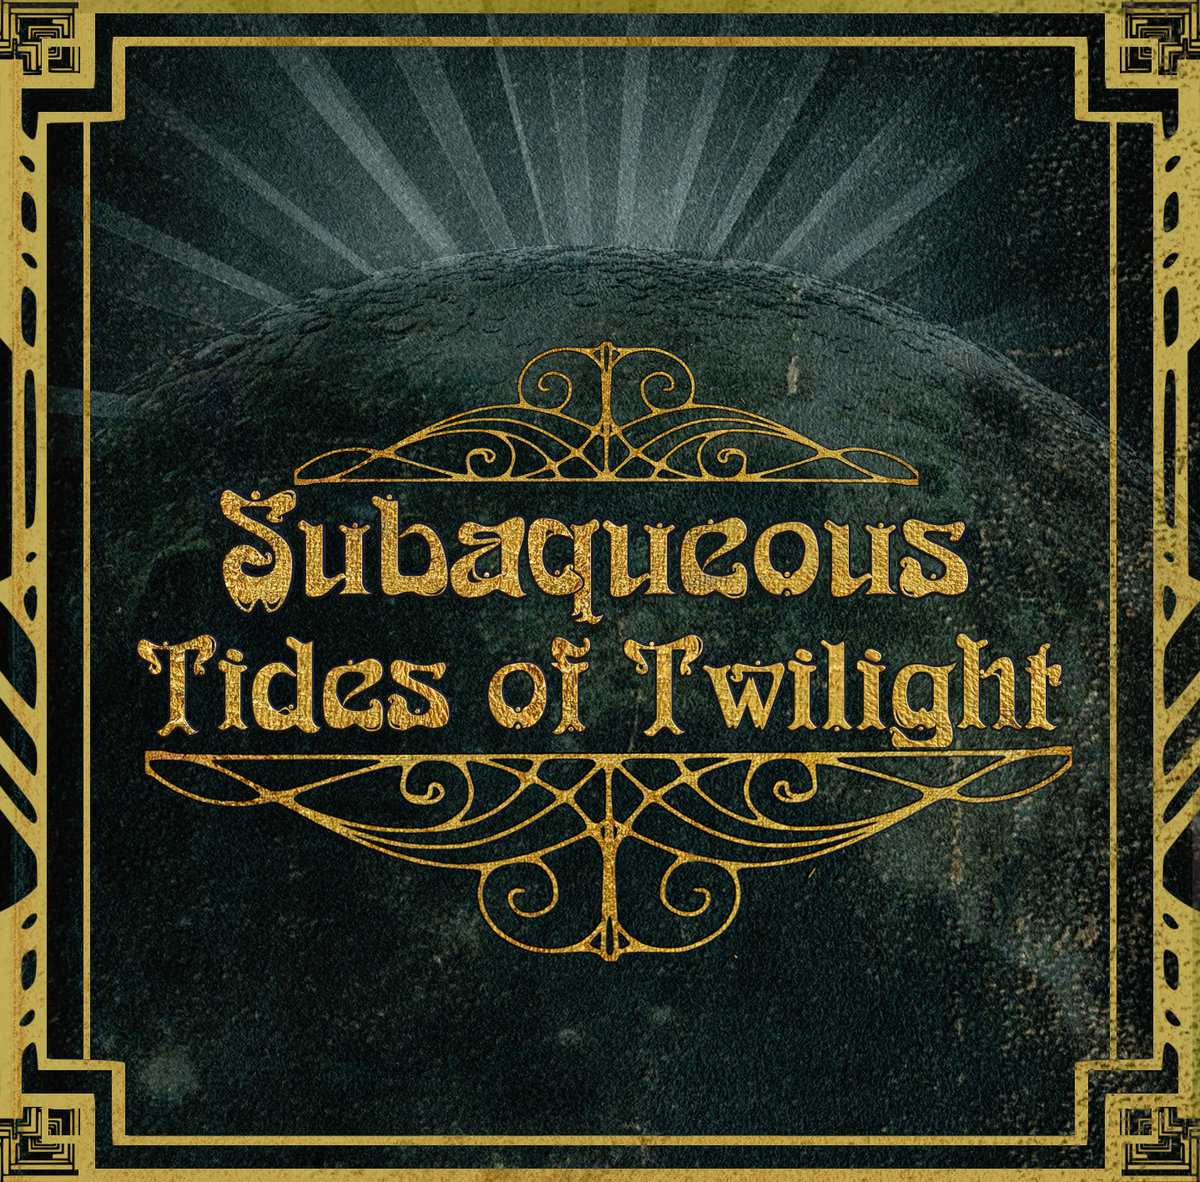 Subaqueous feat. Kalpataru Tree - Insistent Shades @ 'Tides of Twilight' album (electronic, ambient)